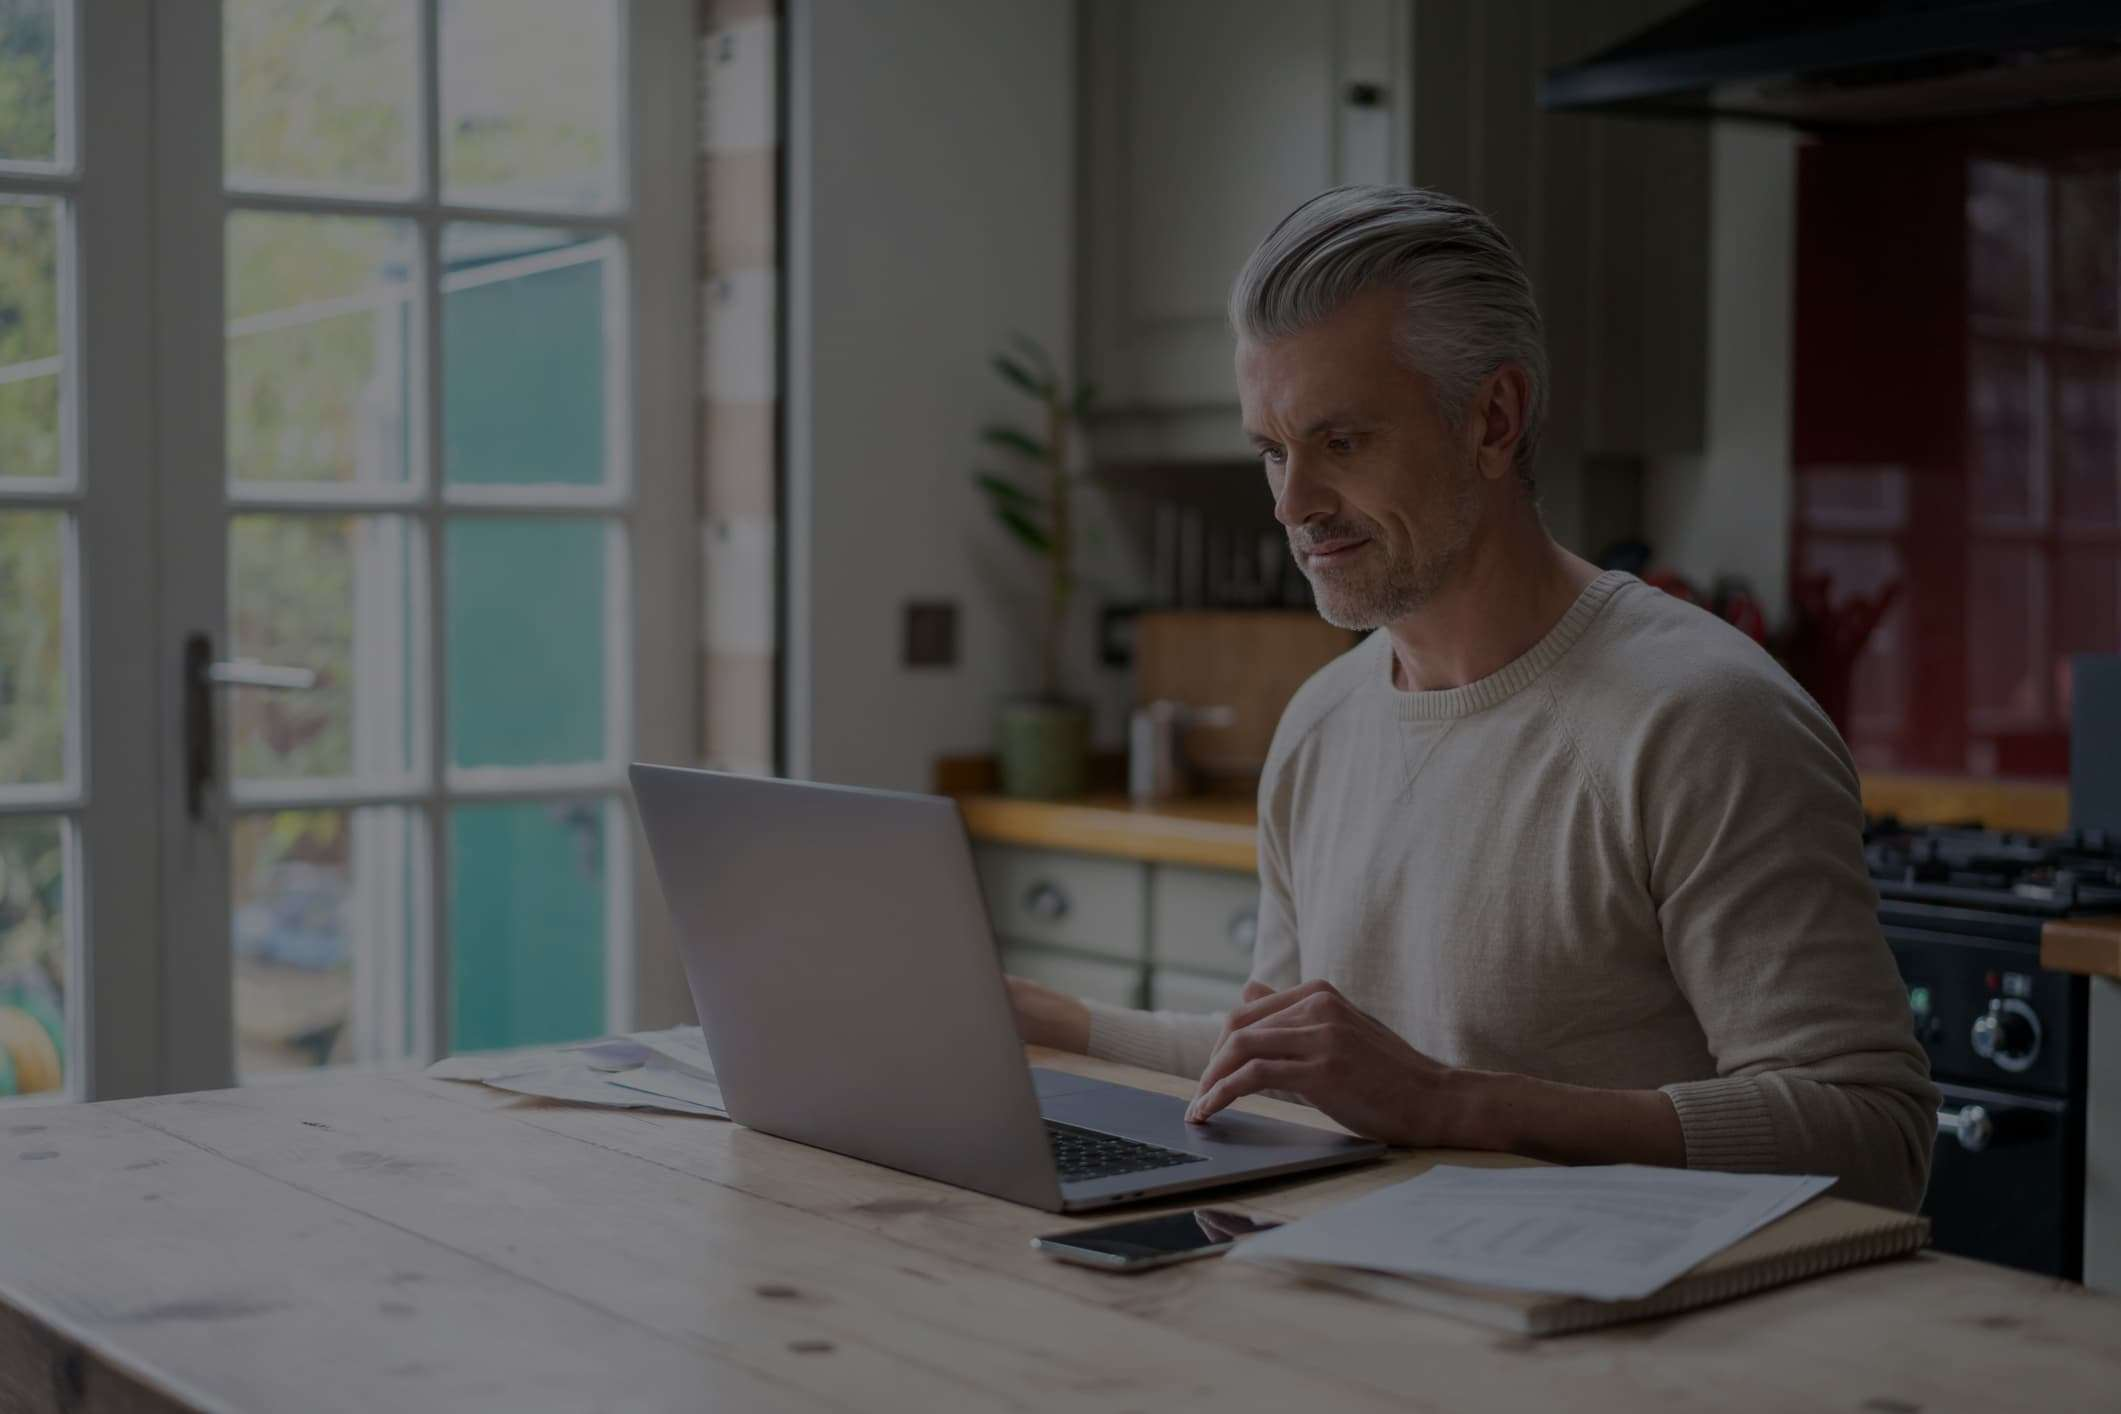 How to continue professional development while working from home